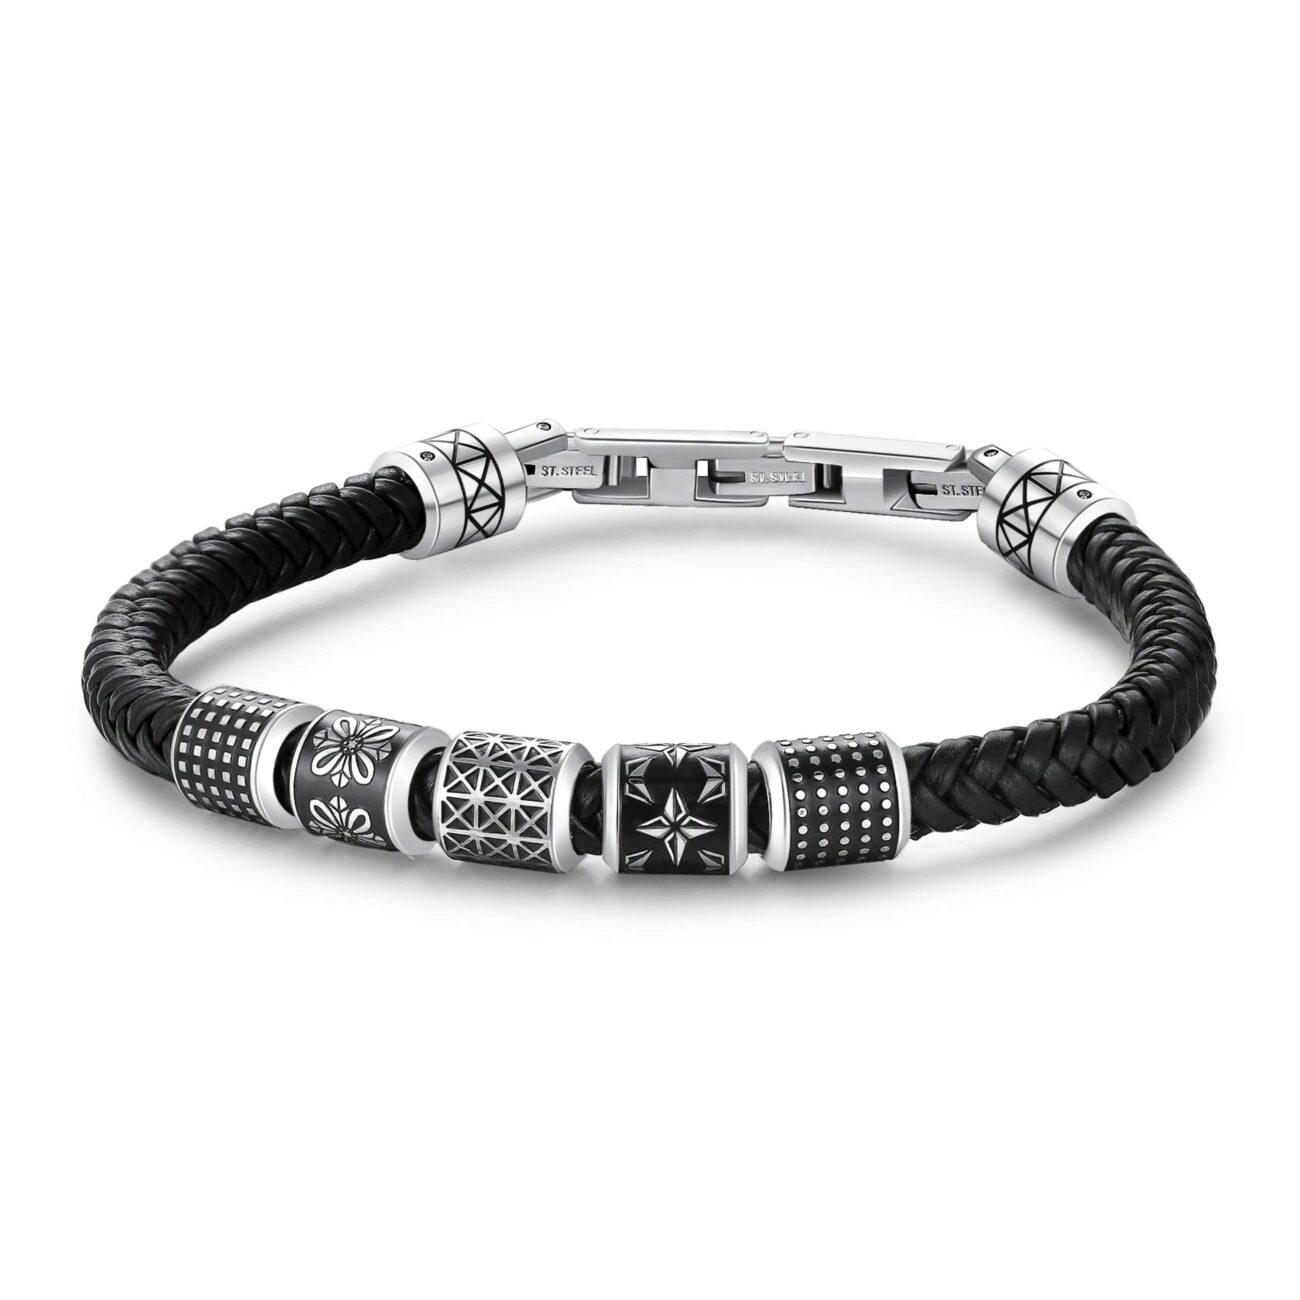 Black leather bracelet with 316L stainless steel and black enamel elements.